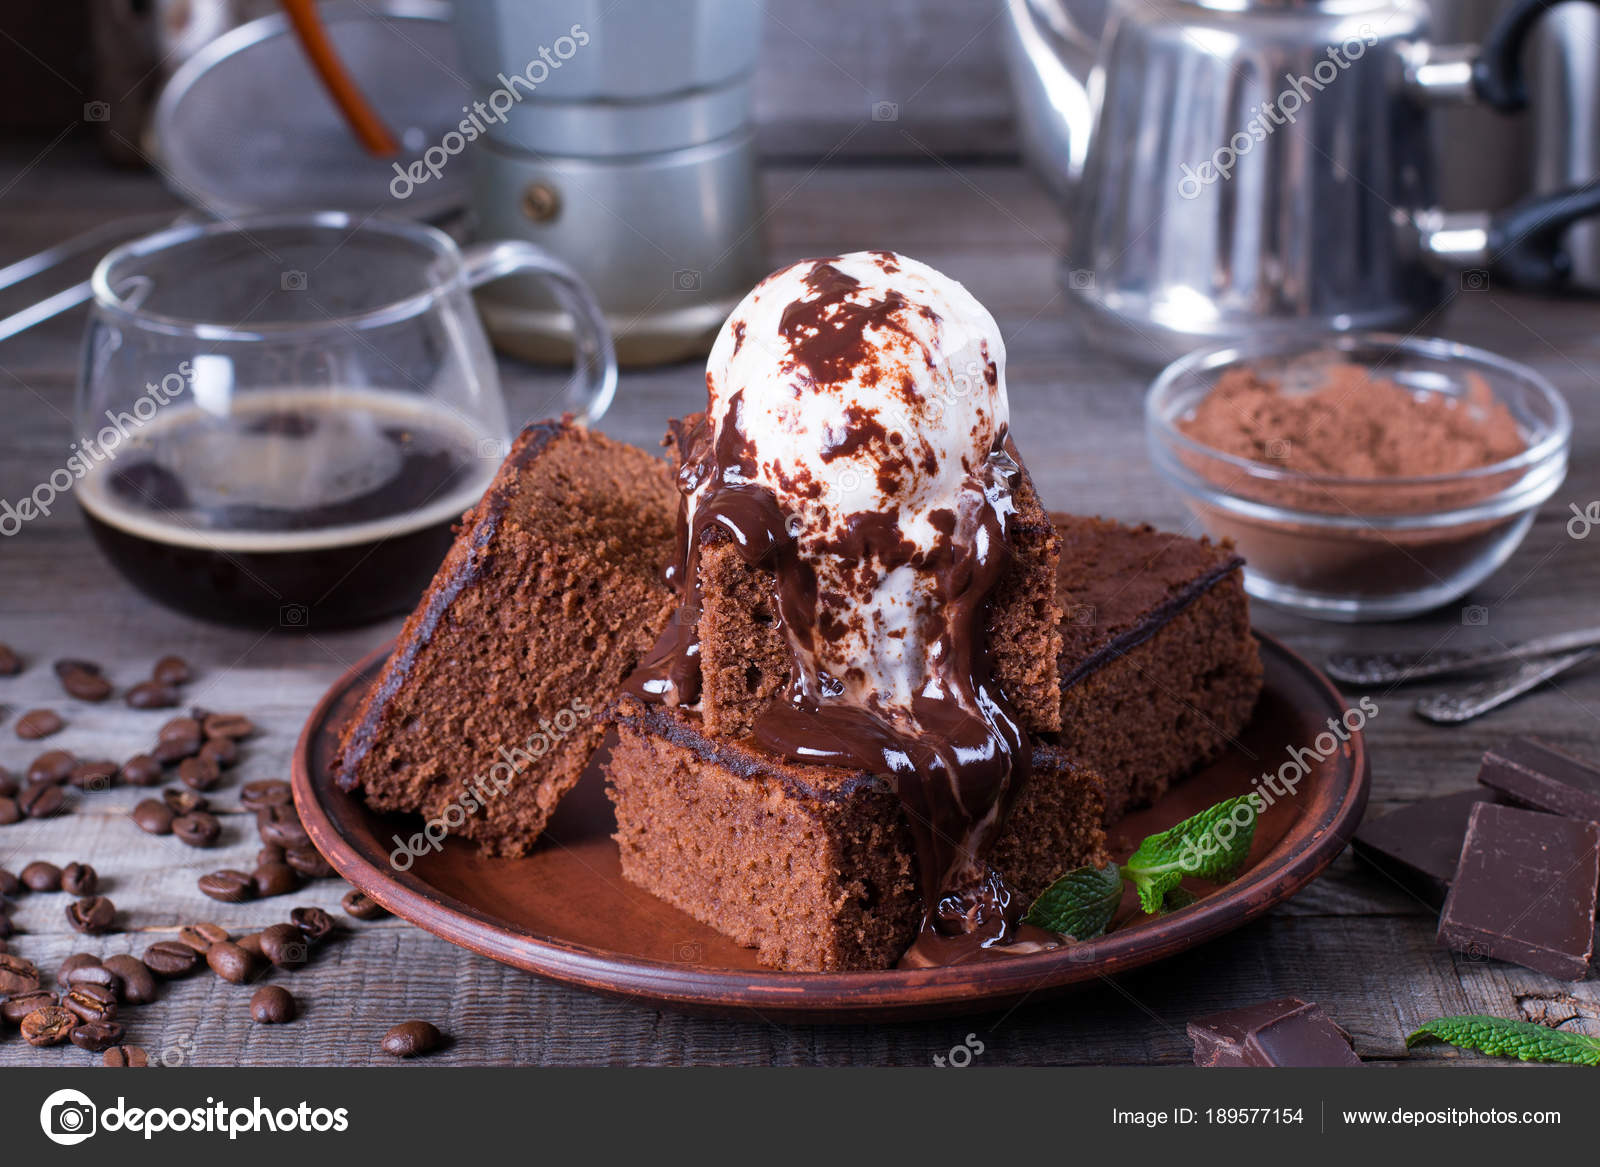 Homemade Brownies With Ice Cream On Top And Chocolate Sauce Are